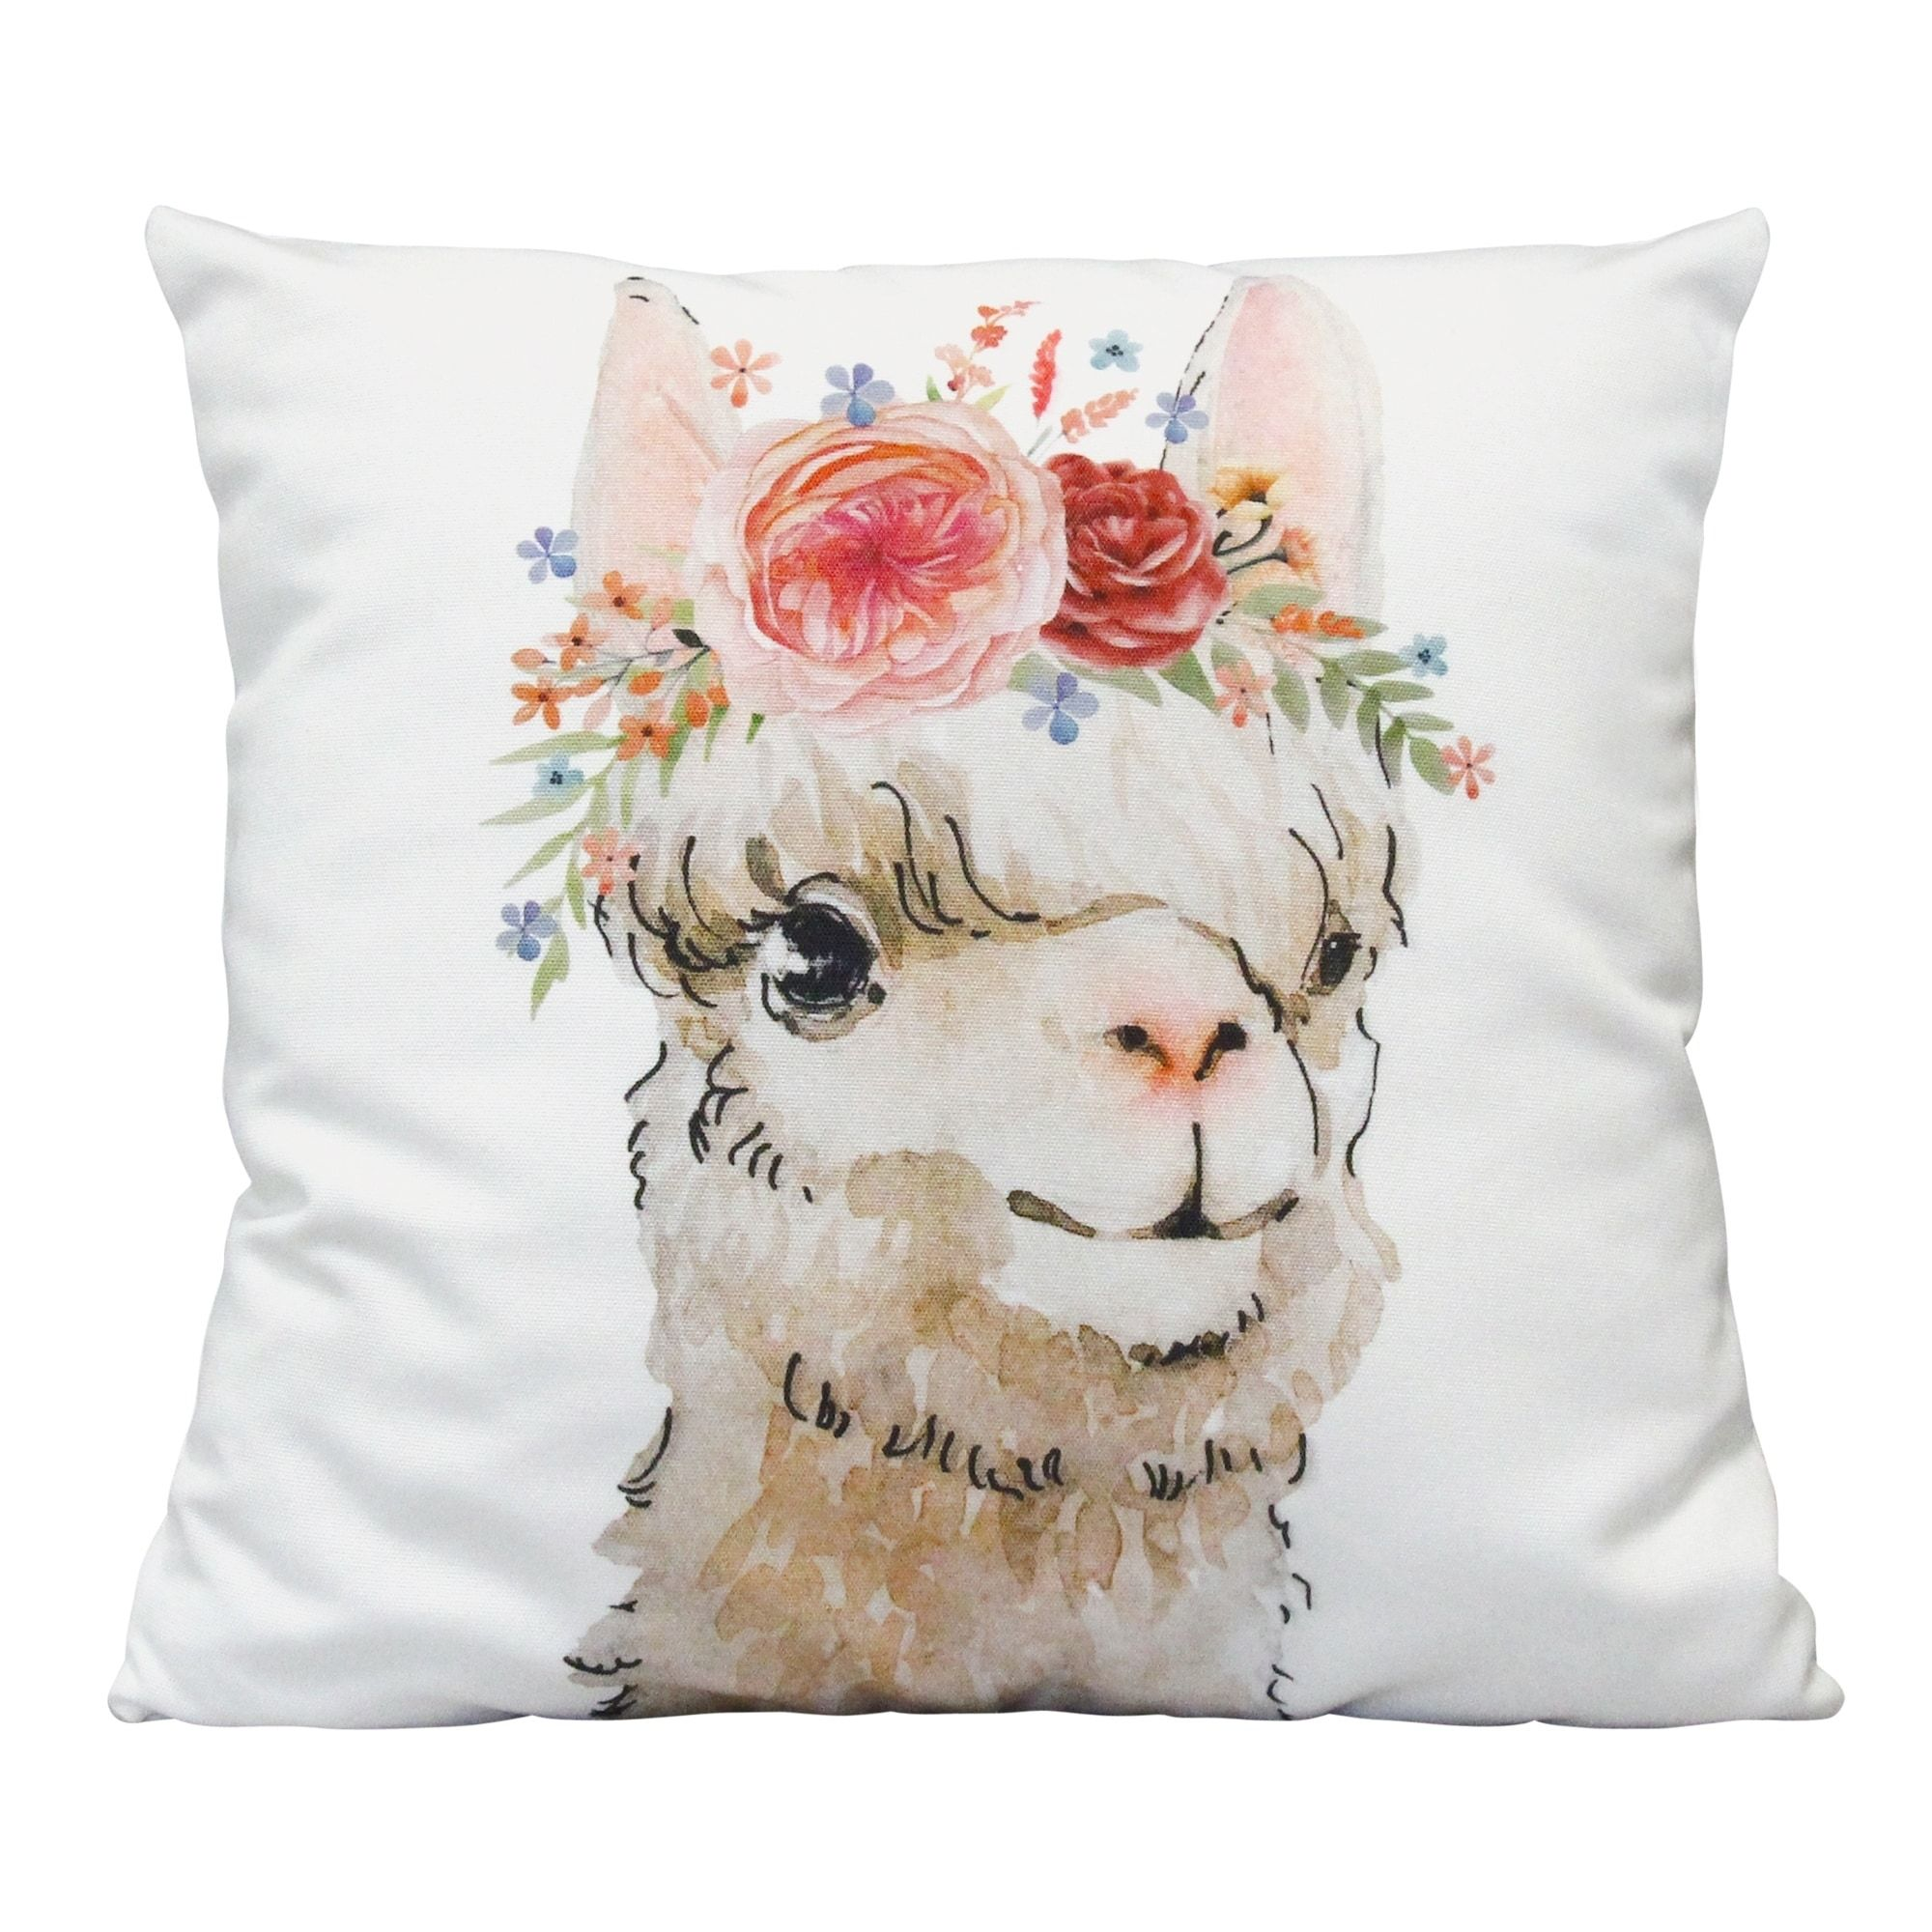 "Stratton Home Decor Boho Flower Llama 18"" Square Pillow, Multicolor(Polyester, Animal)"